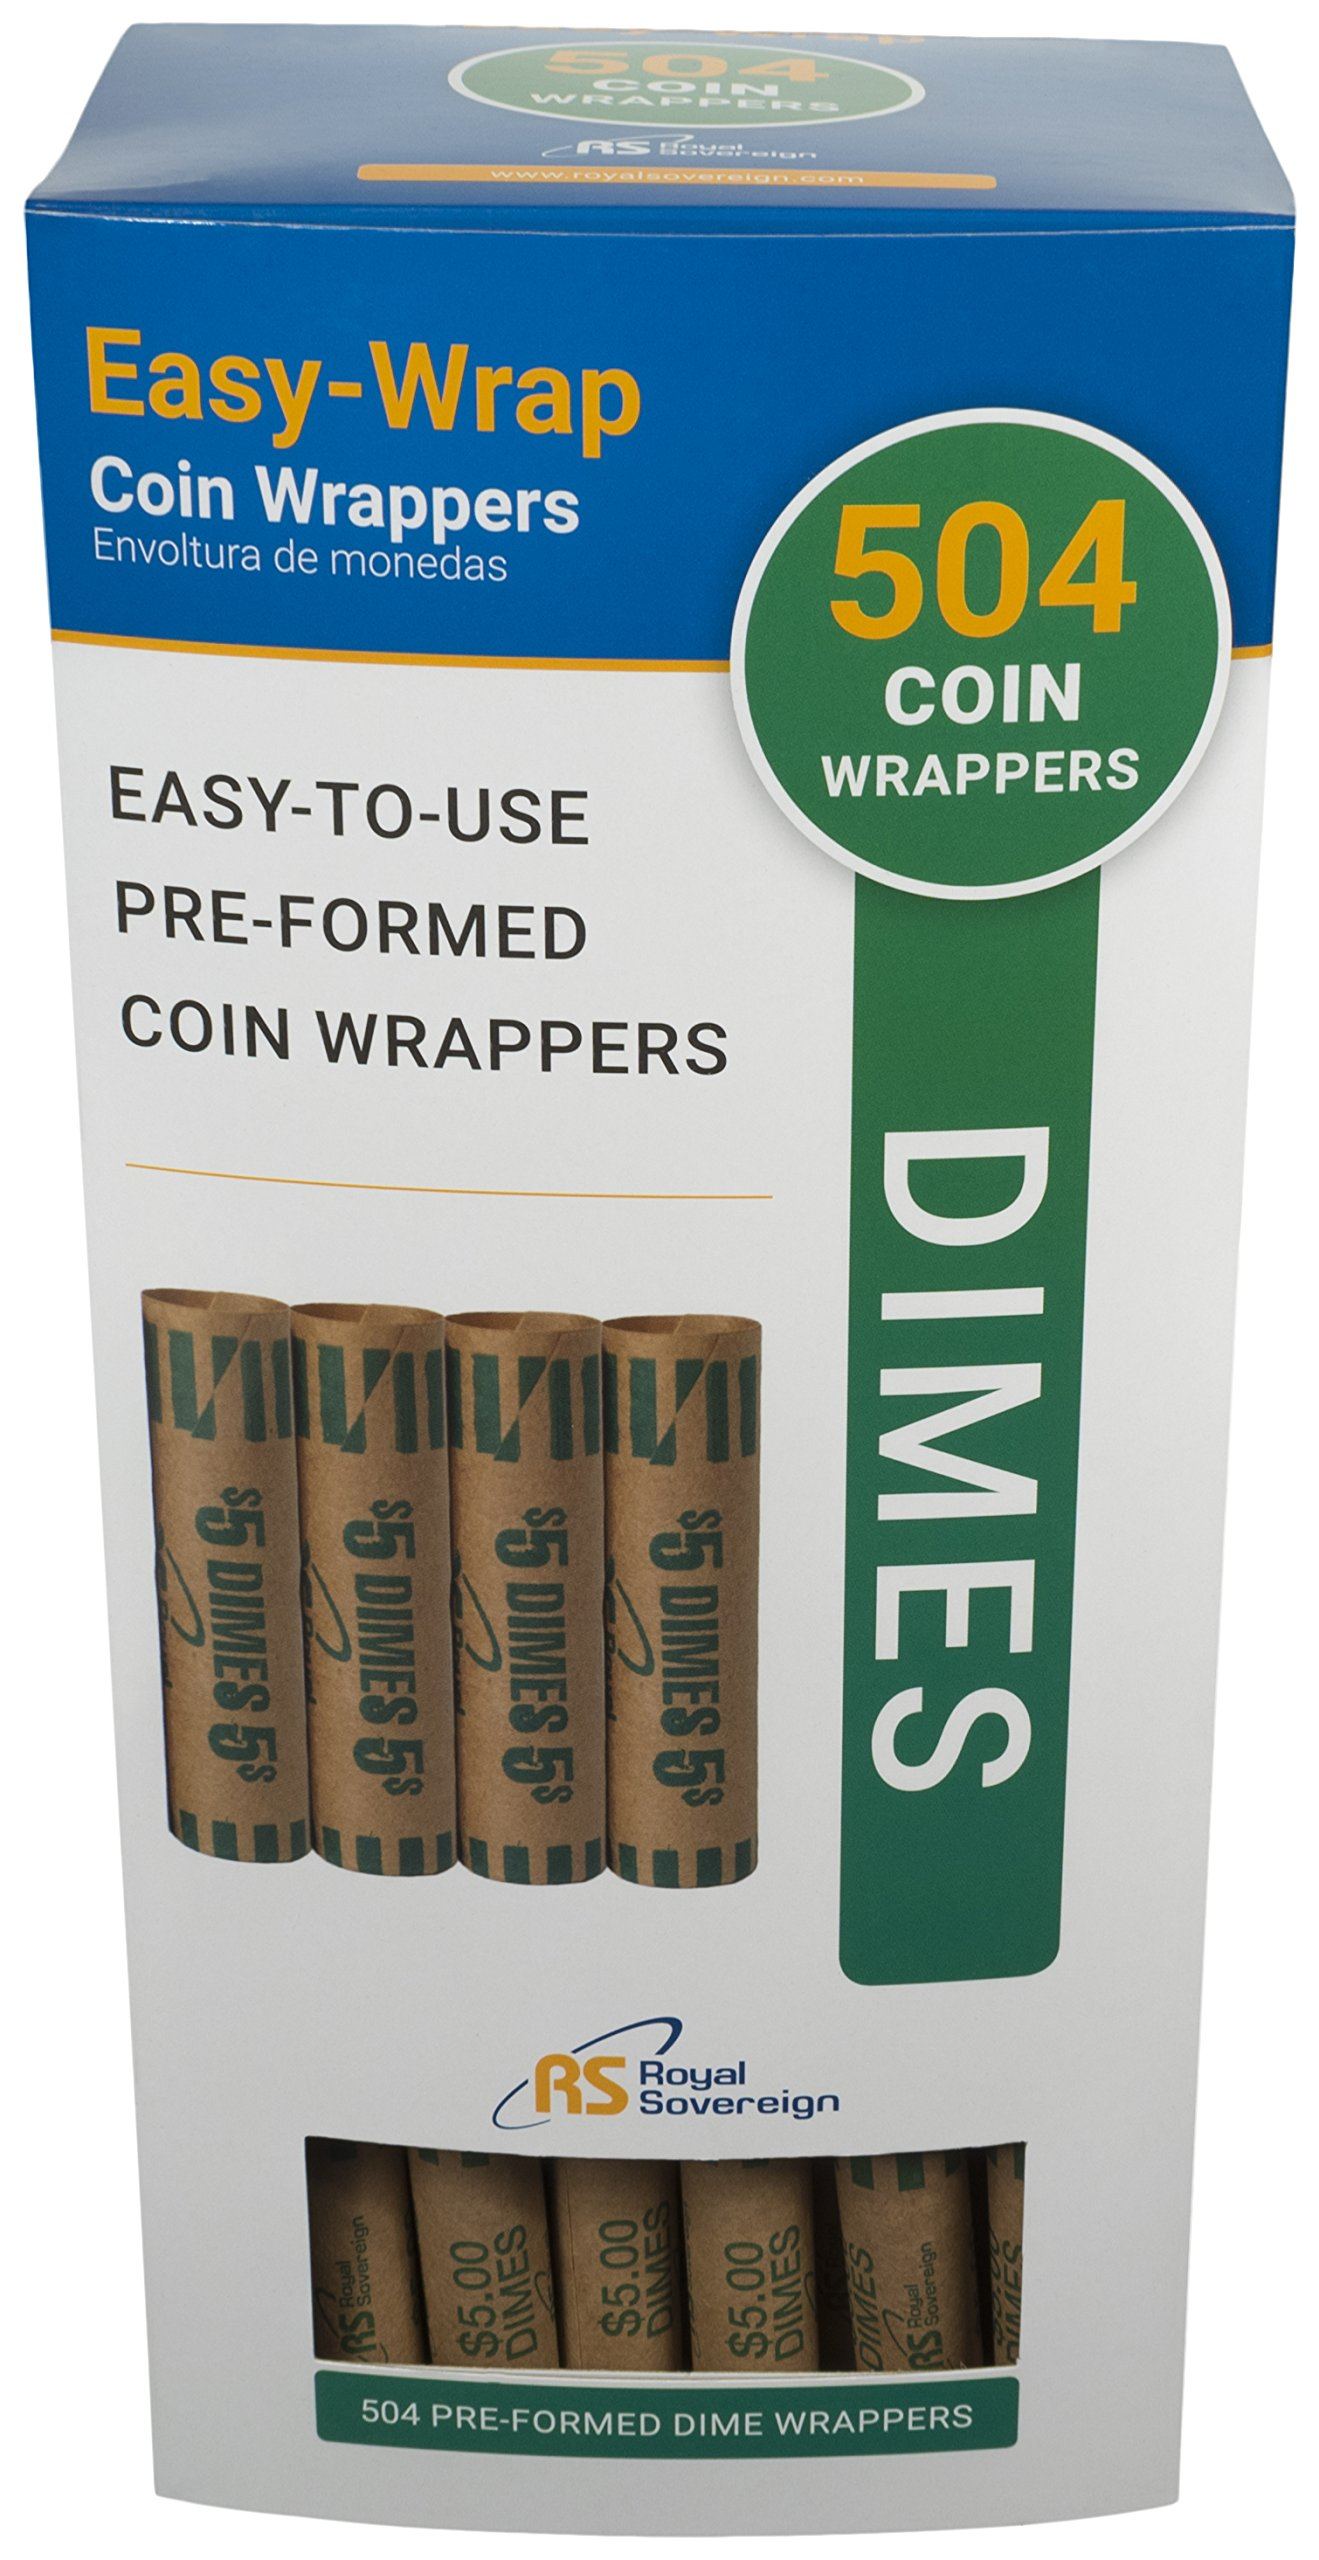 Royal Sovereign Preformed Coin Wrappers, 504 Dime Coin Wrappers (FSW-504D)